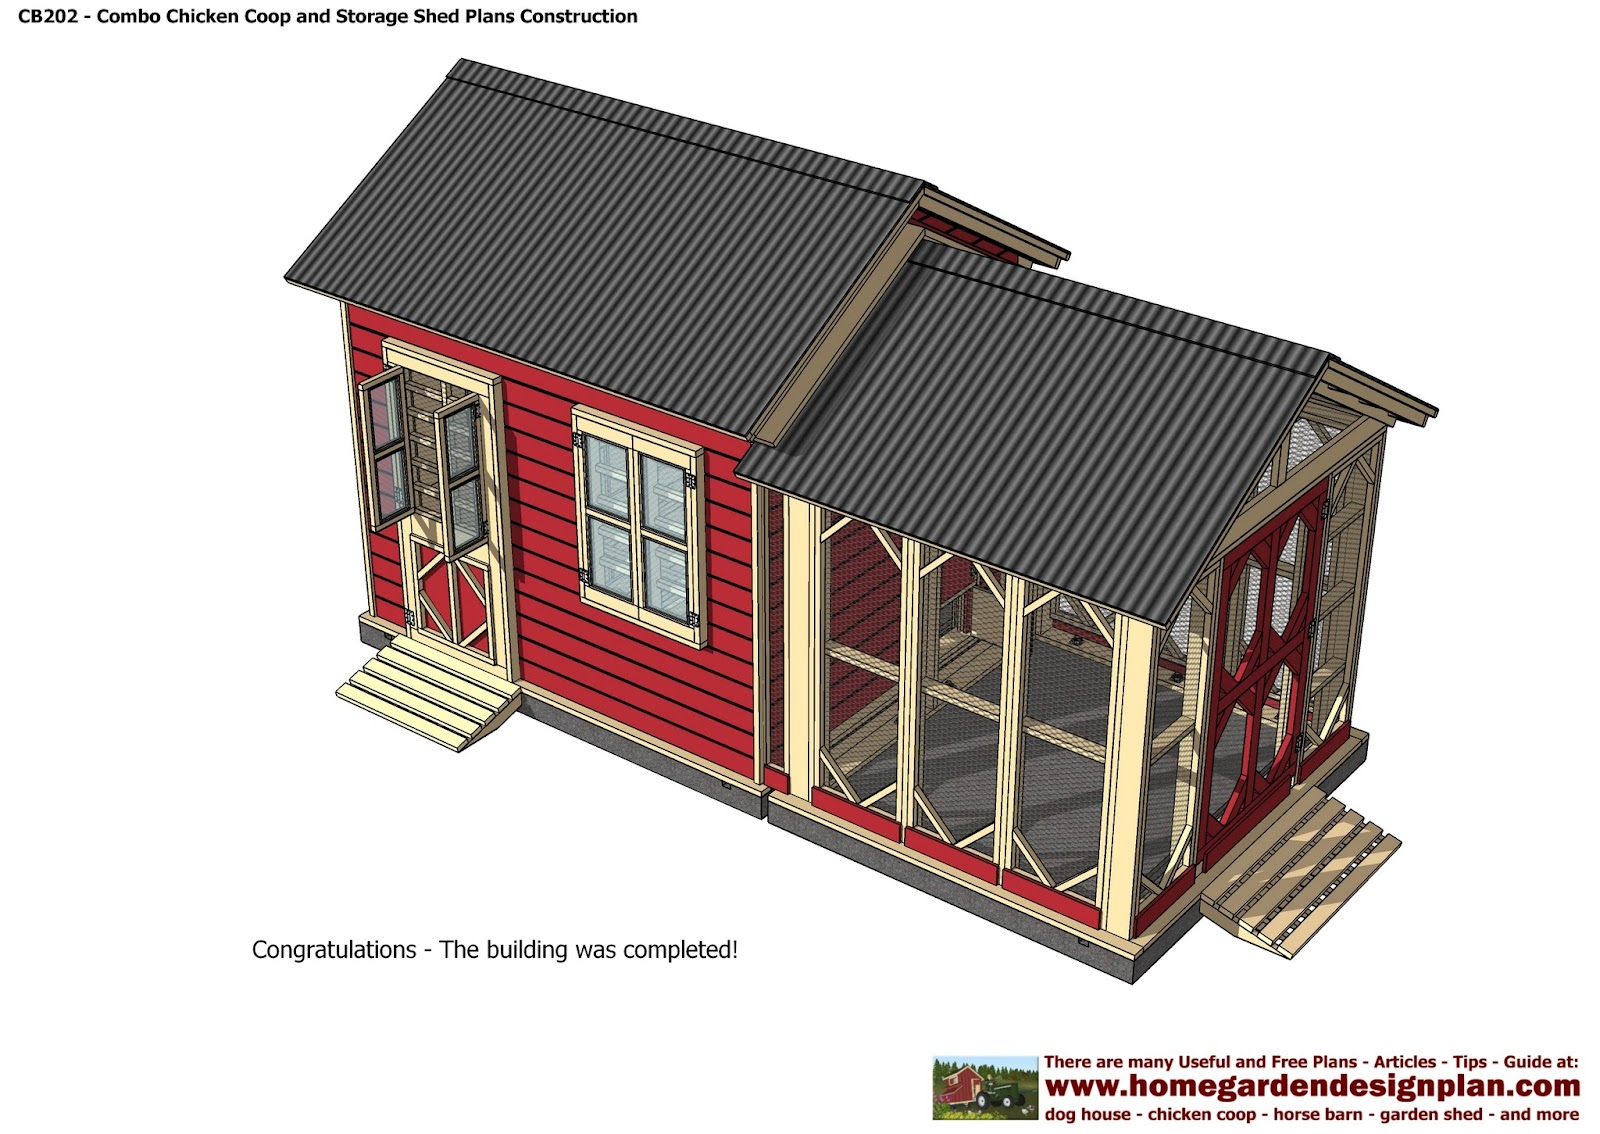 Home garden plans cb202 combo plans chicken coop for Storage shed playhouse combo plans